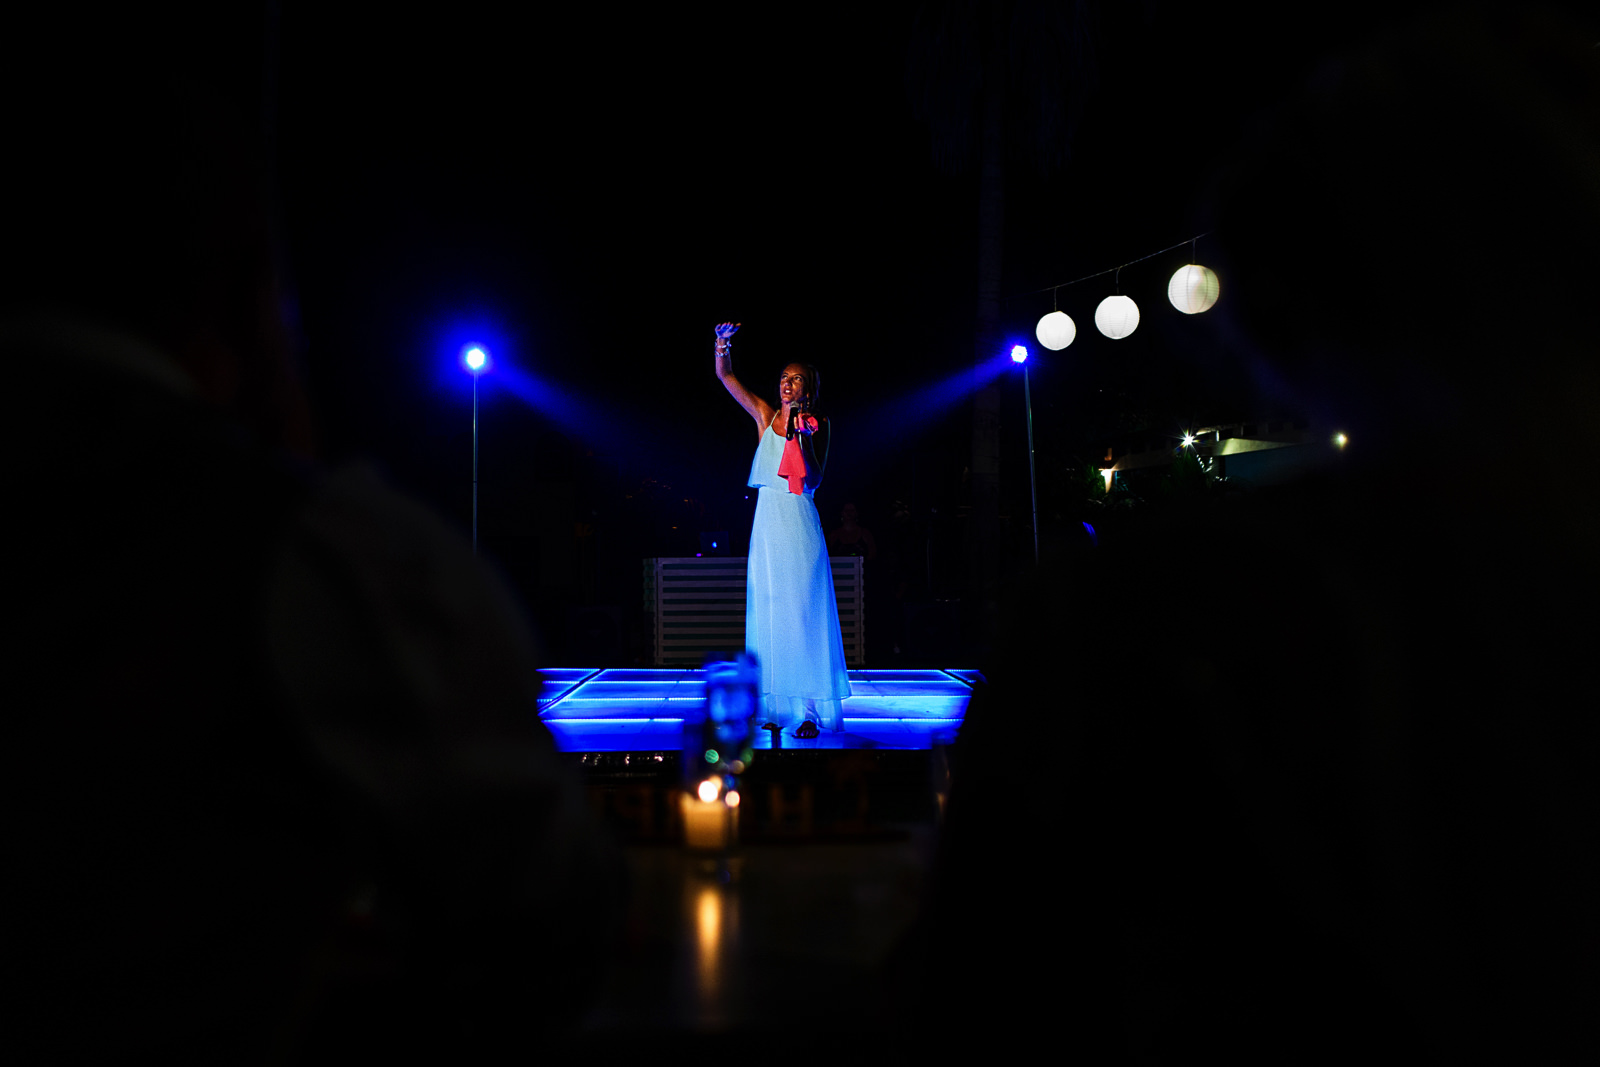 Maid of honor standing on the dance floor during her speech and toast to the groom and bide